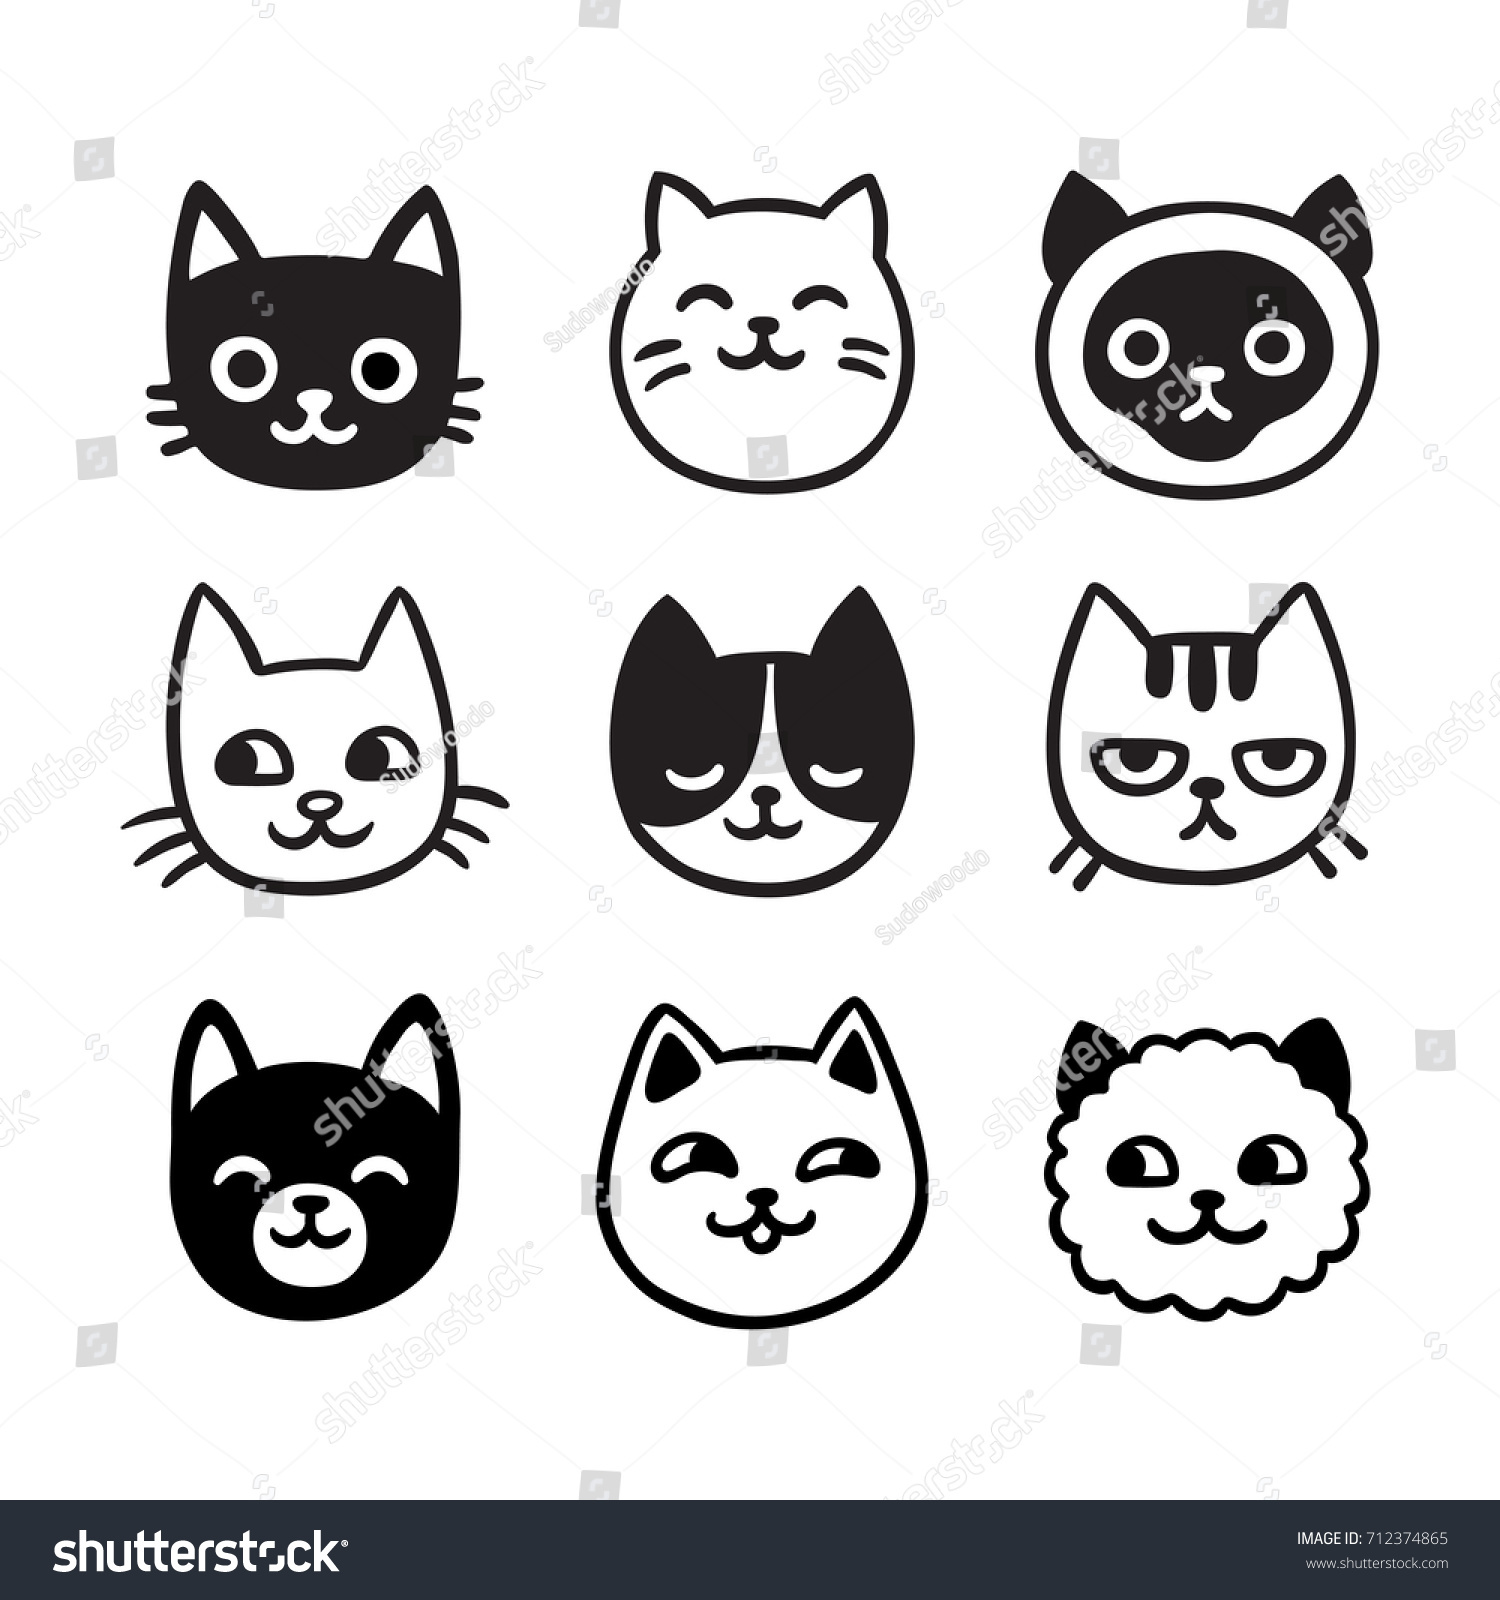 Cute Cartoon Cat Doodle Funny Icons Stock Illustration Royalty